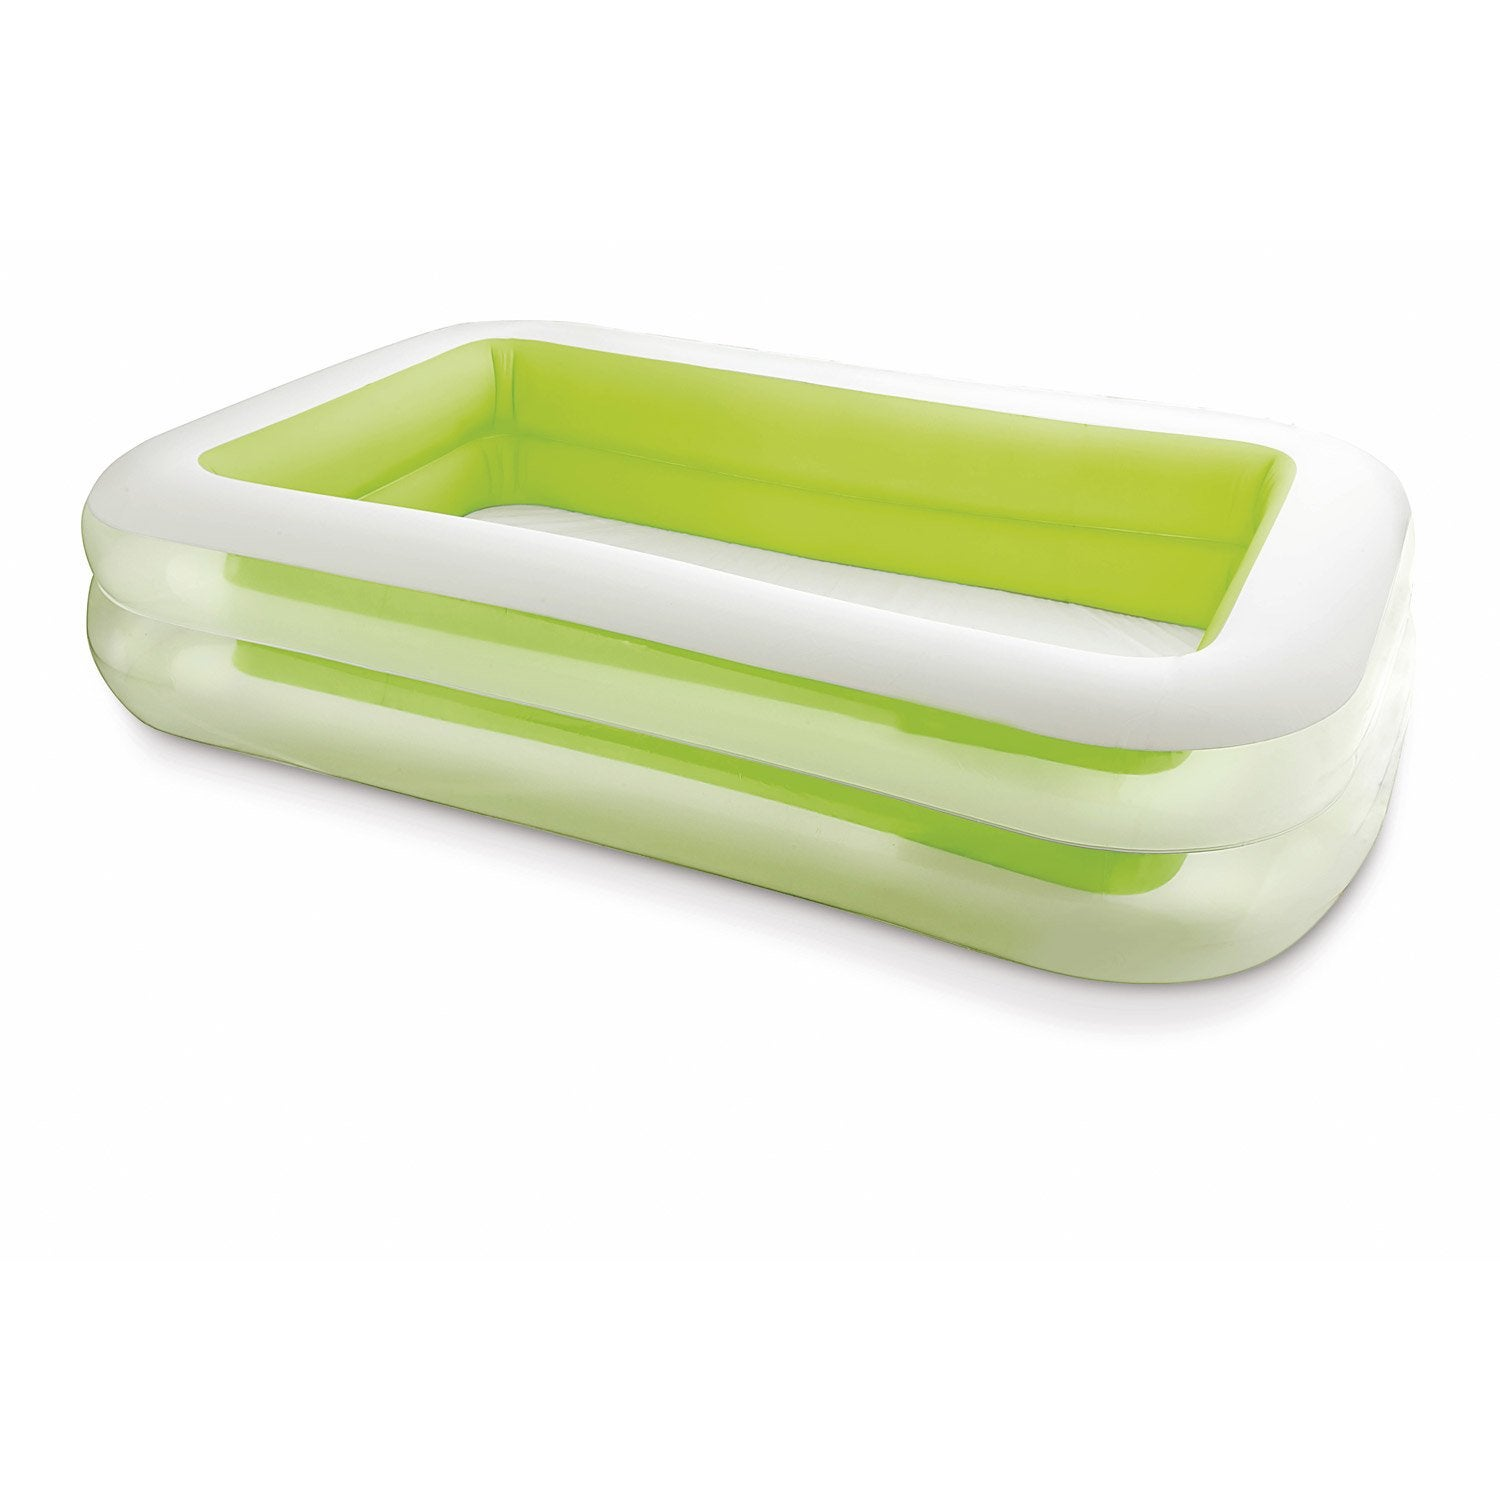 Design piscine gonflable avec toboggan toulouse 22 for Piscine hors sol toulouse